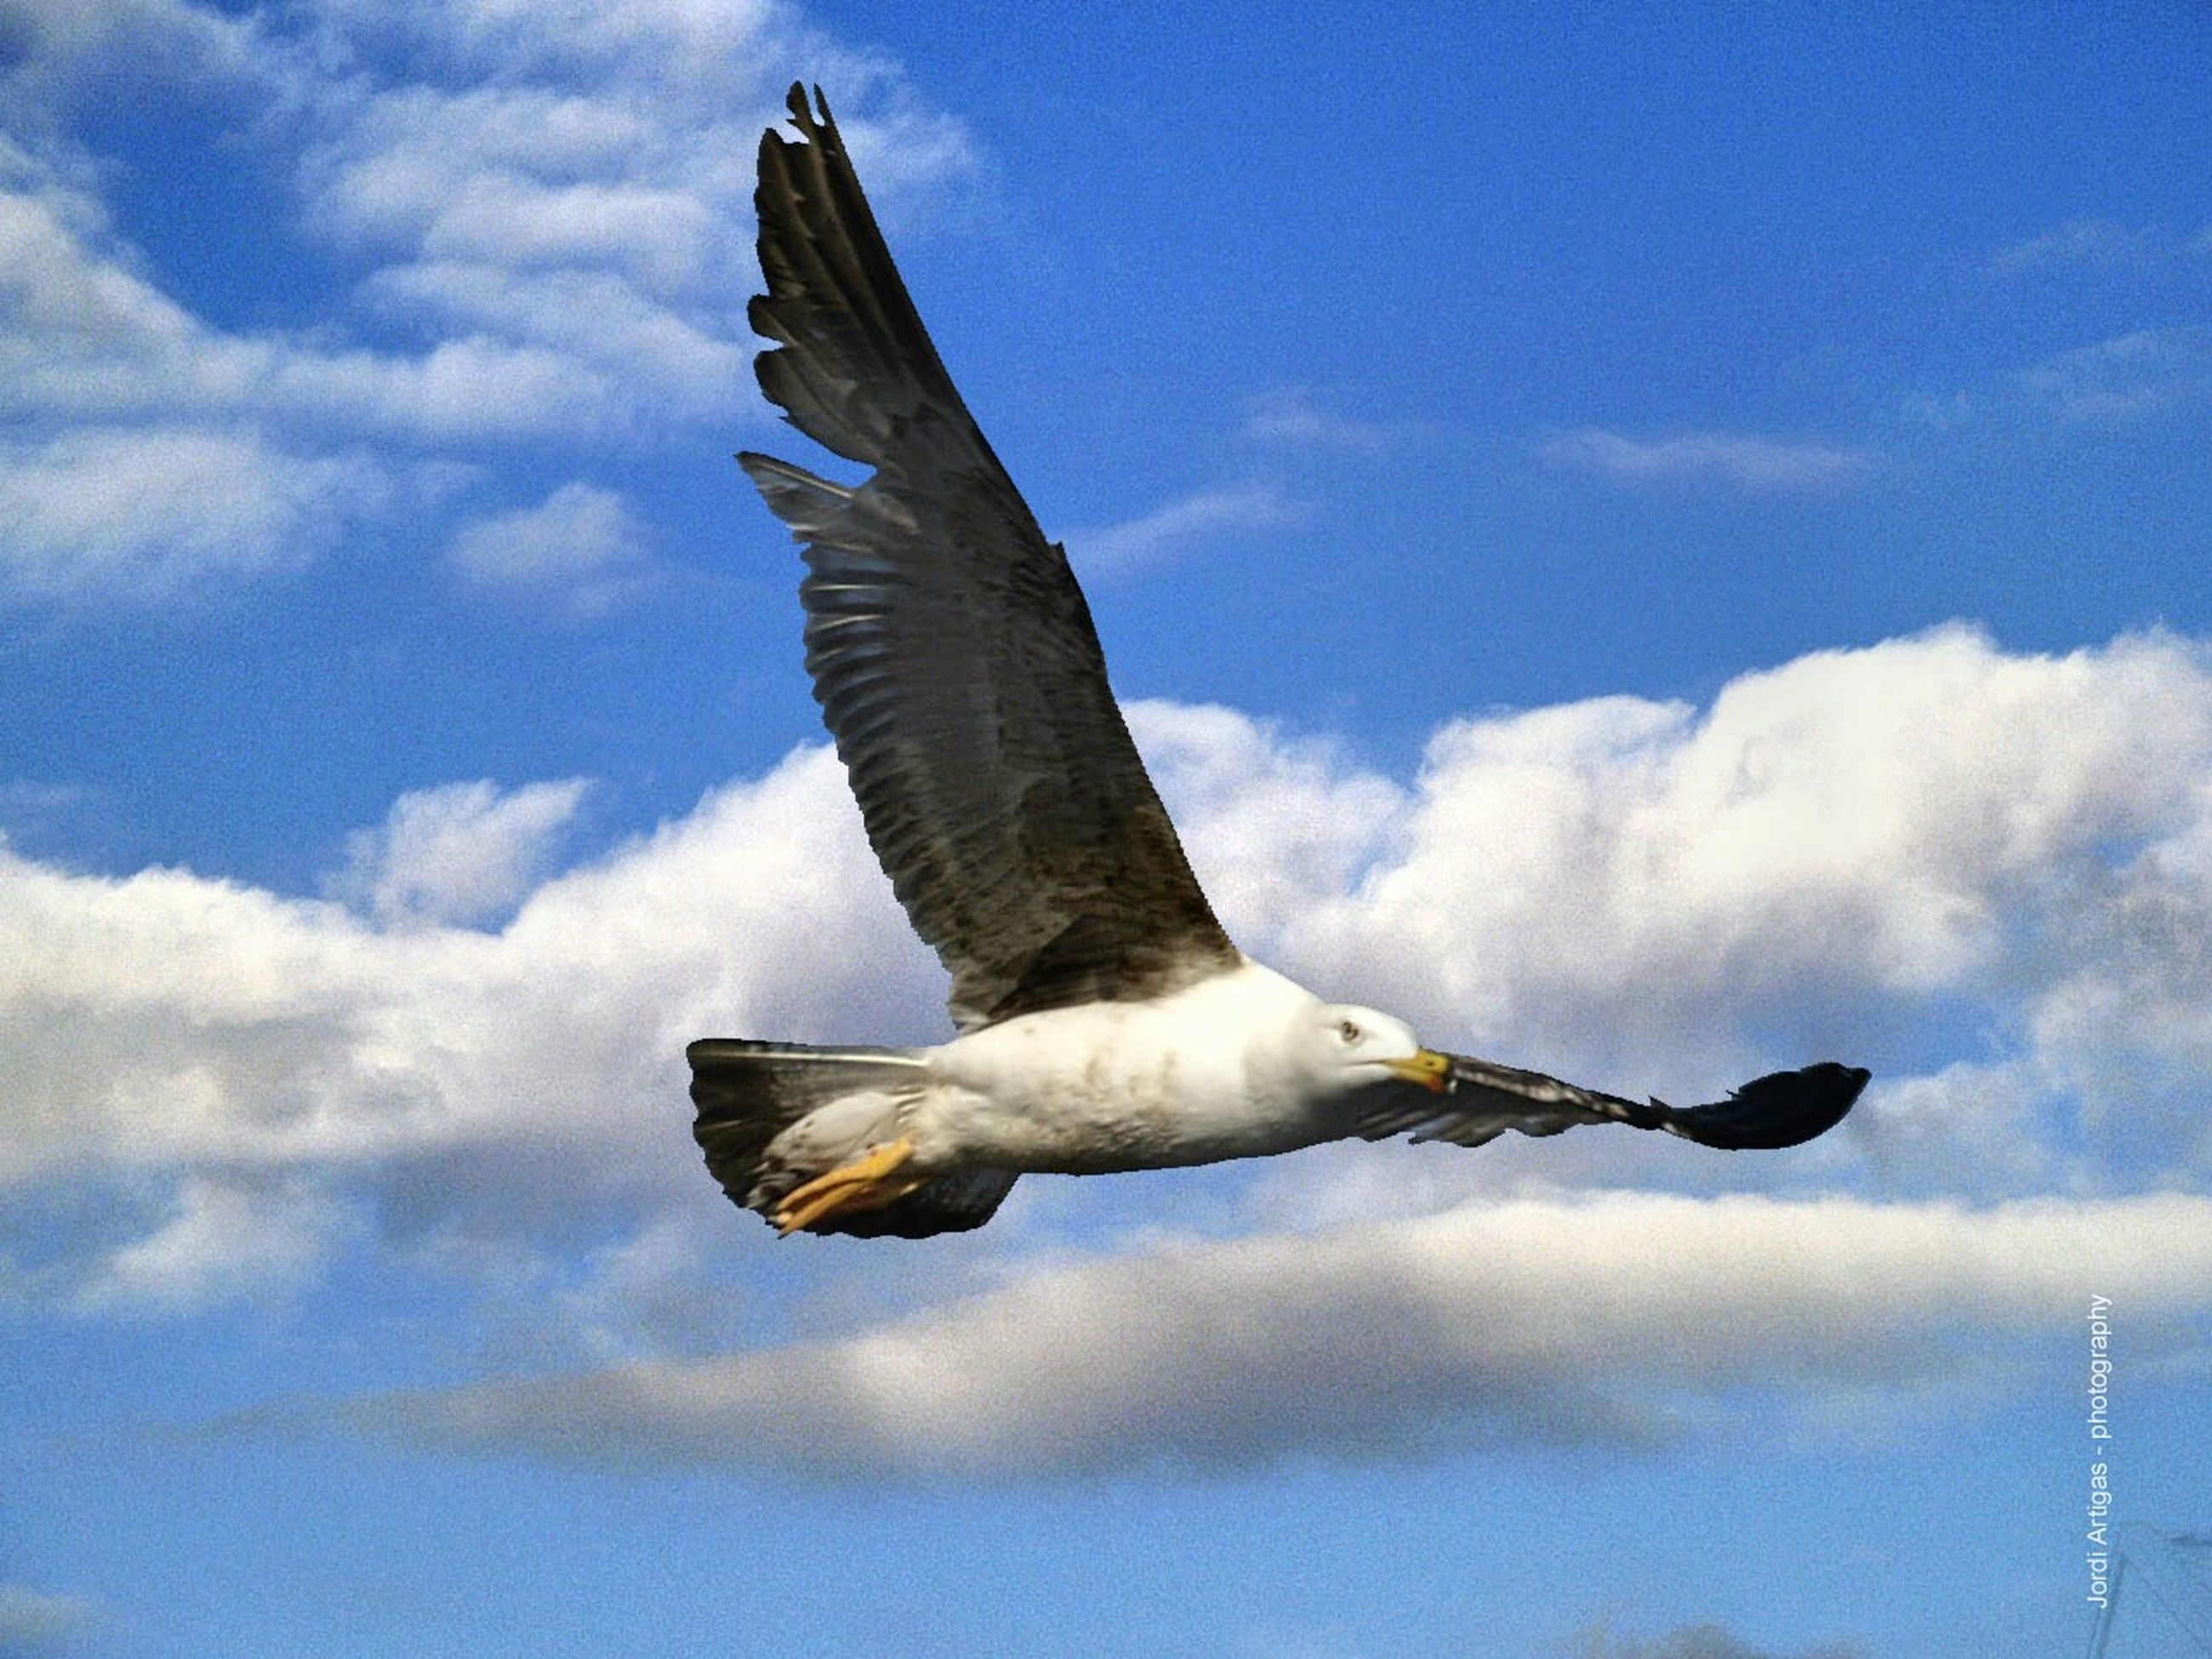 flying, bird, animal themes, spread wings, animals in the wild, one animal, wildlife, low angle view, sky, seagull, blue, flight, mid-air, cloud, cloud - sky, nature, outdoors, animal wing, zoology, beauty in nature, focus on foreground, tranquility, no people